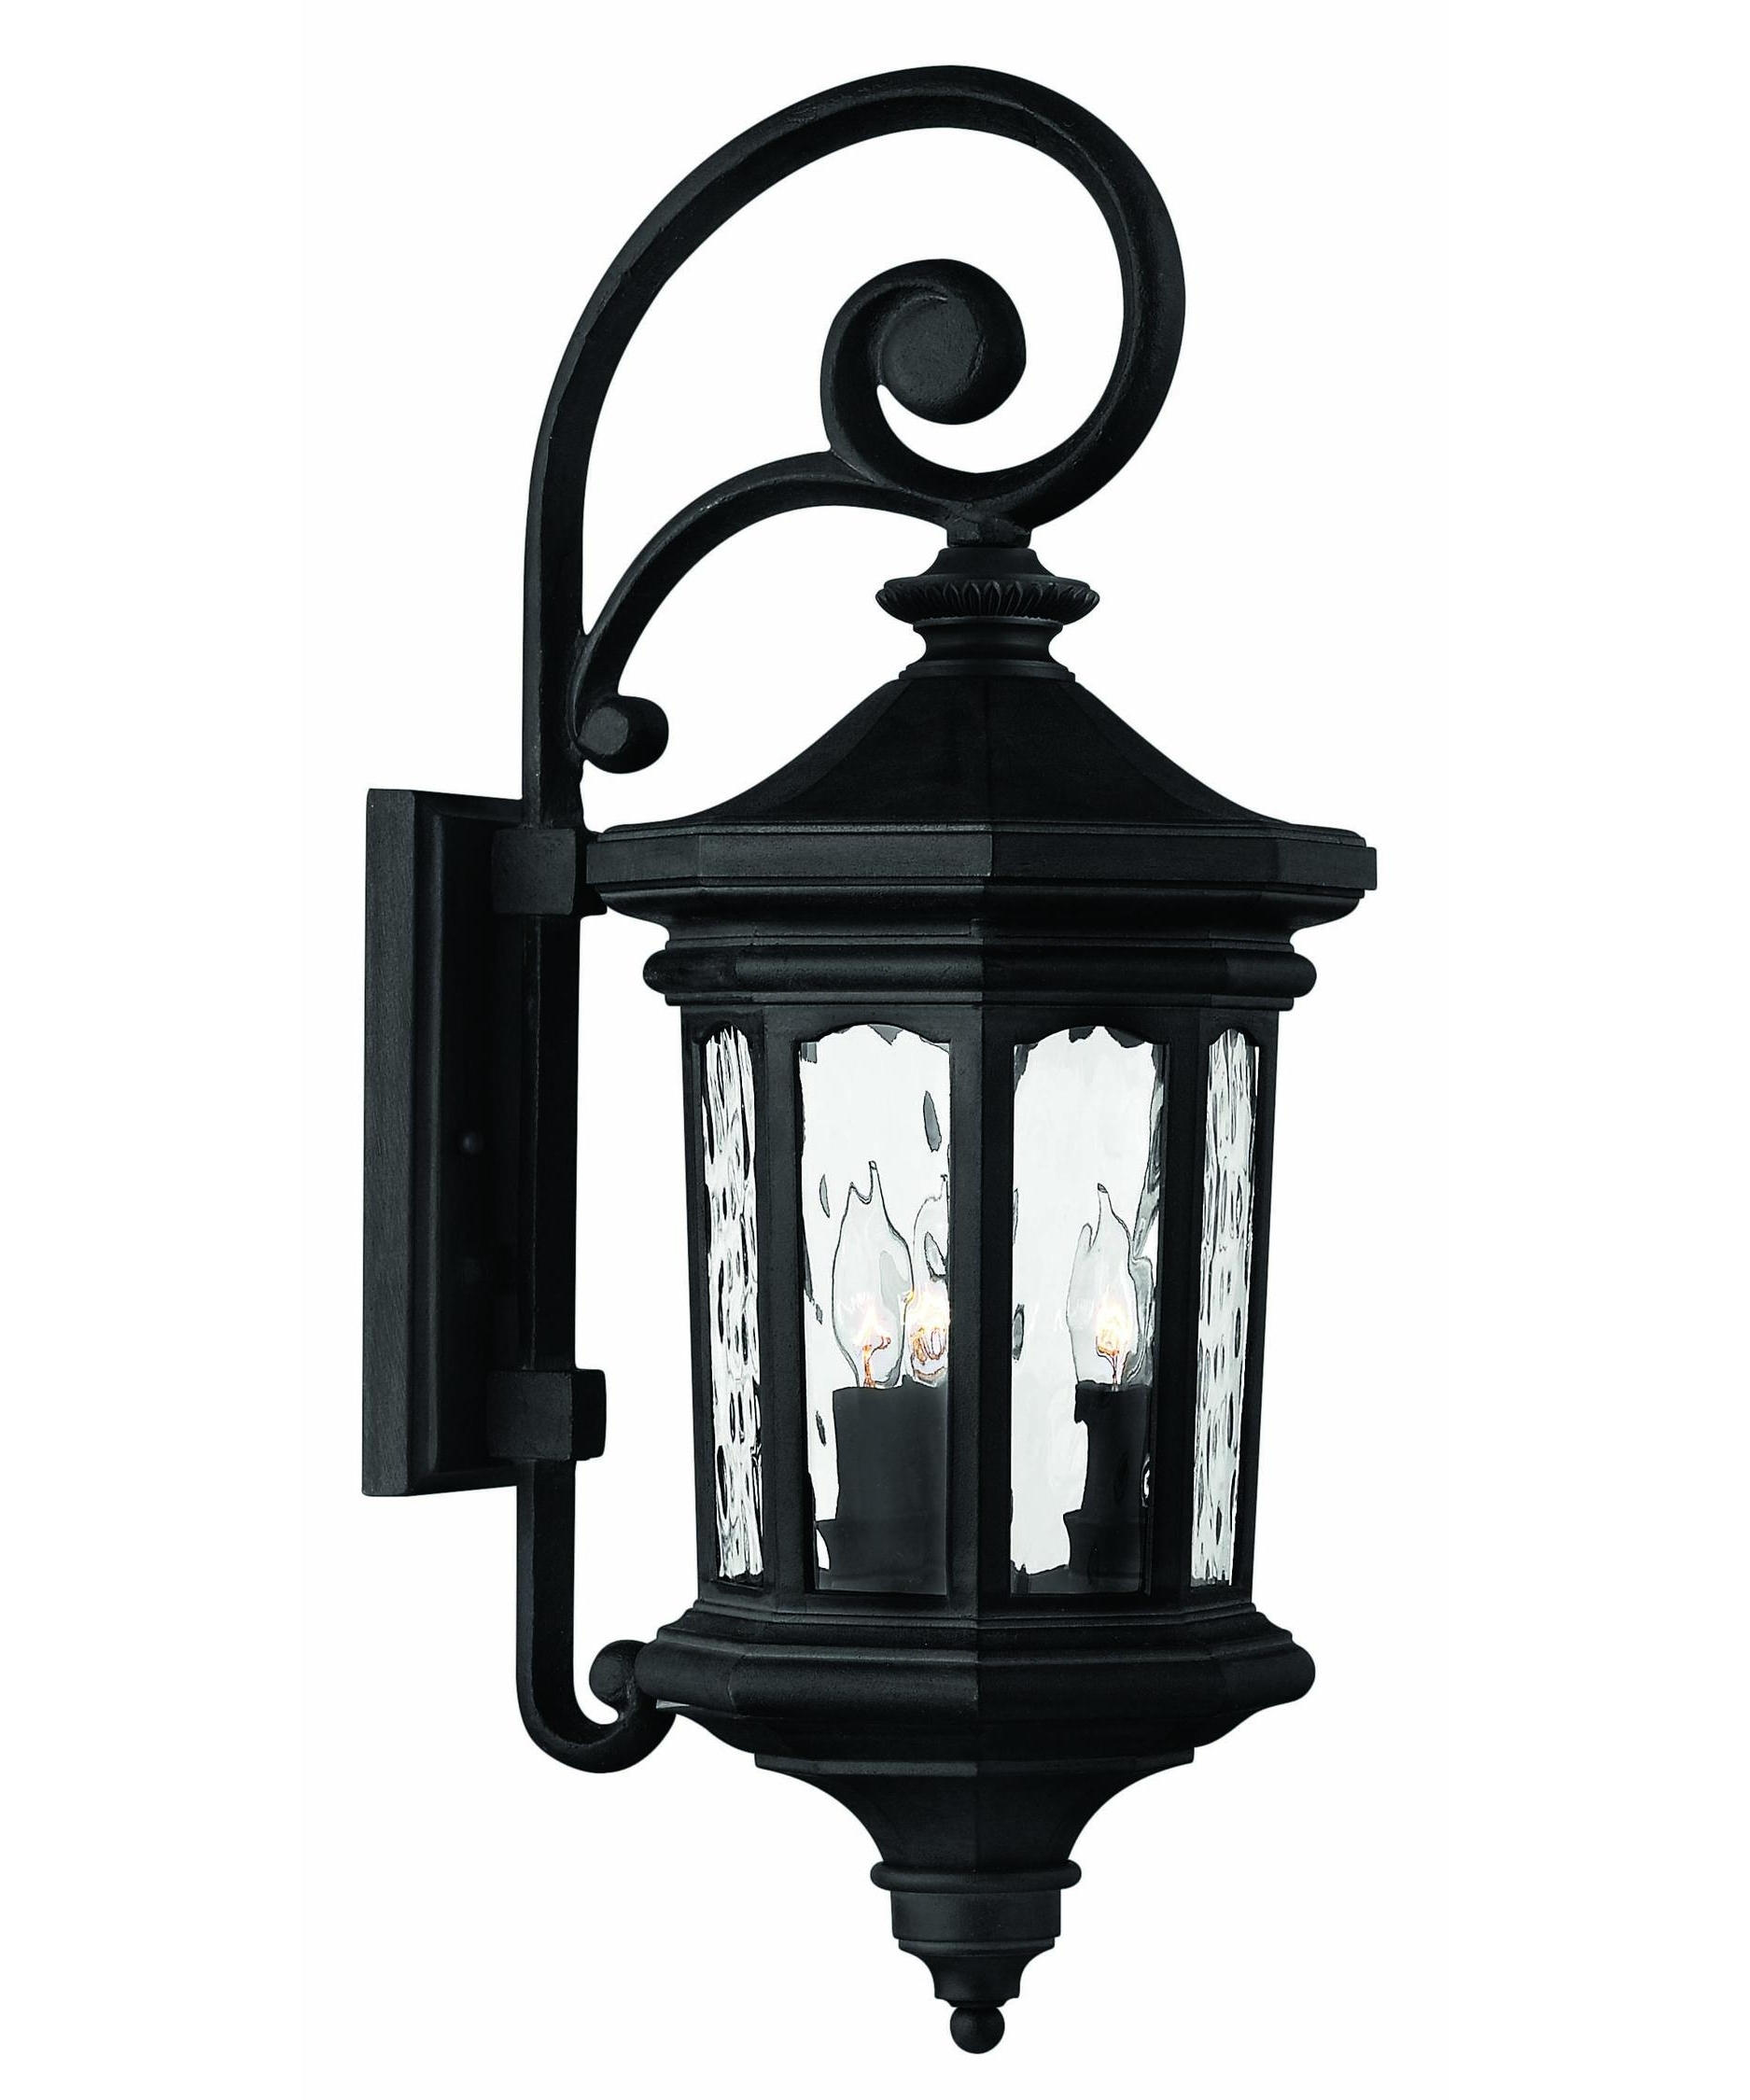 Hinkley Lighting 1604 Raley 10 Inch Wide 3 Light Outdoor Wall Light Intended For Well Known Hinkley Outdoor Wall Lighting (View 4 of 20)